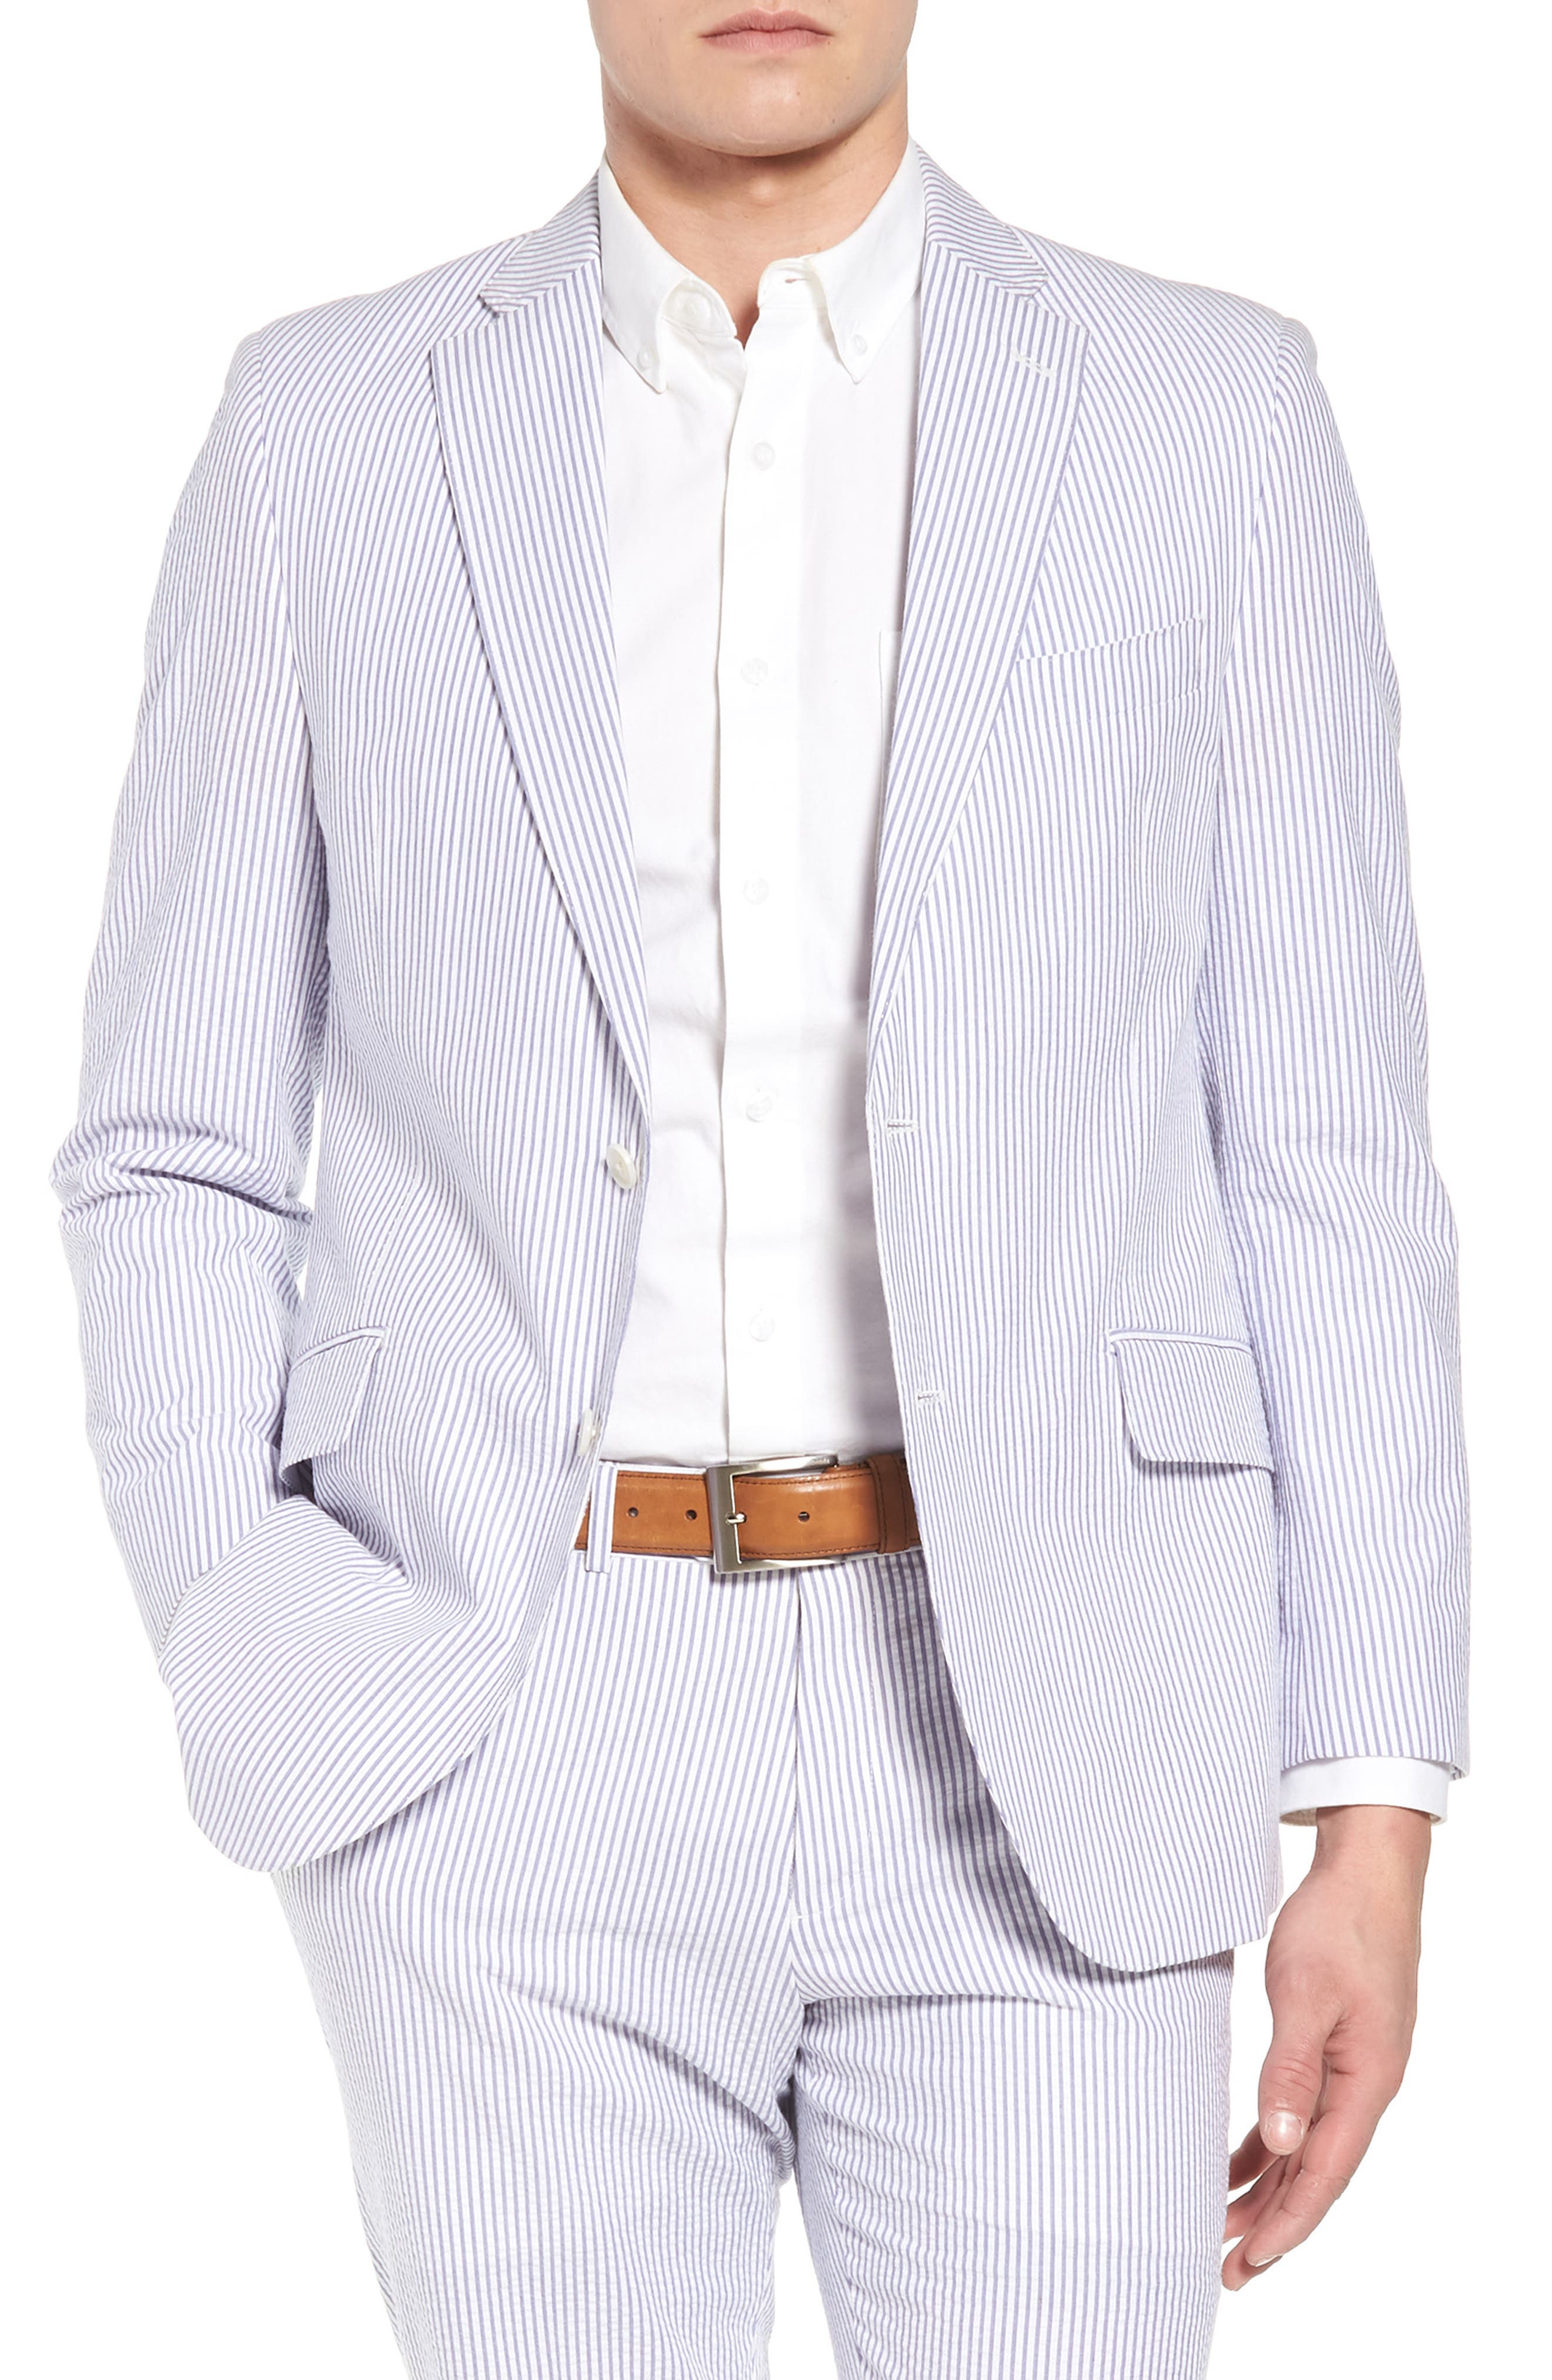 Jack AIM Classic Fit Seersucker Sport Coat,                             Main thumbnail 1, color,                             BLUE AND WHITE